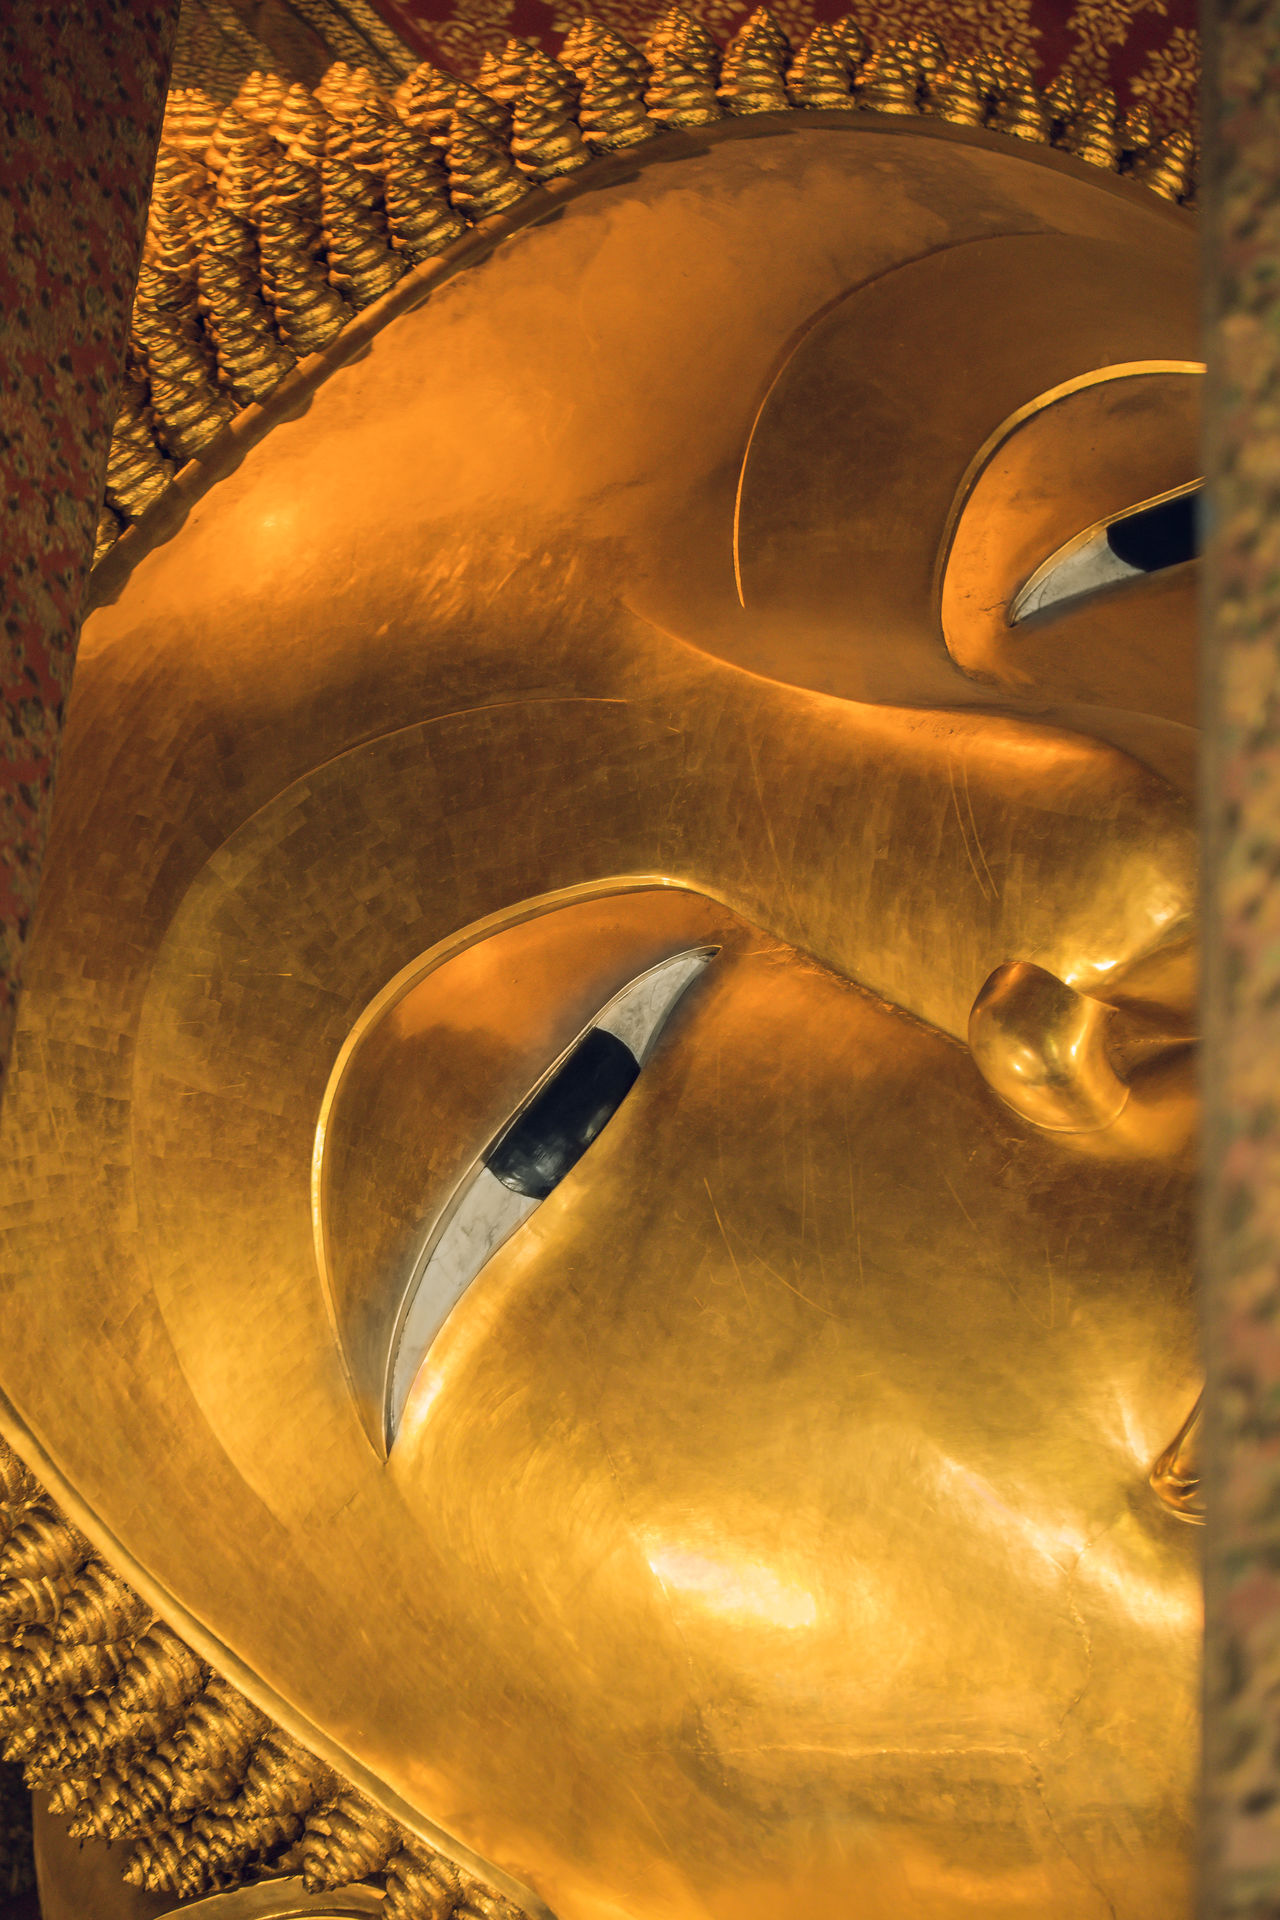 Close up on Buddha face Art Bangkok Buddha Buddhism Buddhist Buddhist Temple Close-up Culture Cultures Day Focus Gold Colored Indoors  No People Place Of Worship Power Relegion Relegious Religion Spirit Spiritual Spirituality Spritual Statue Wat Pho